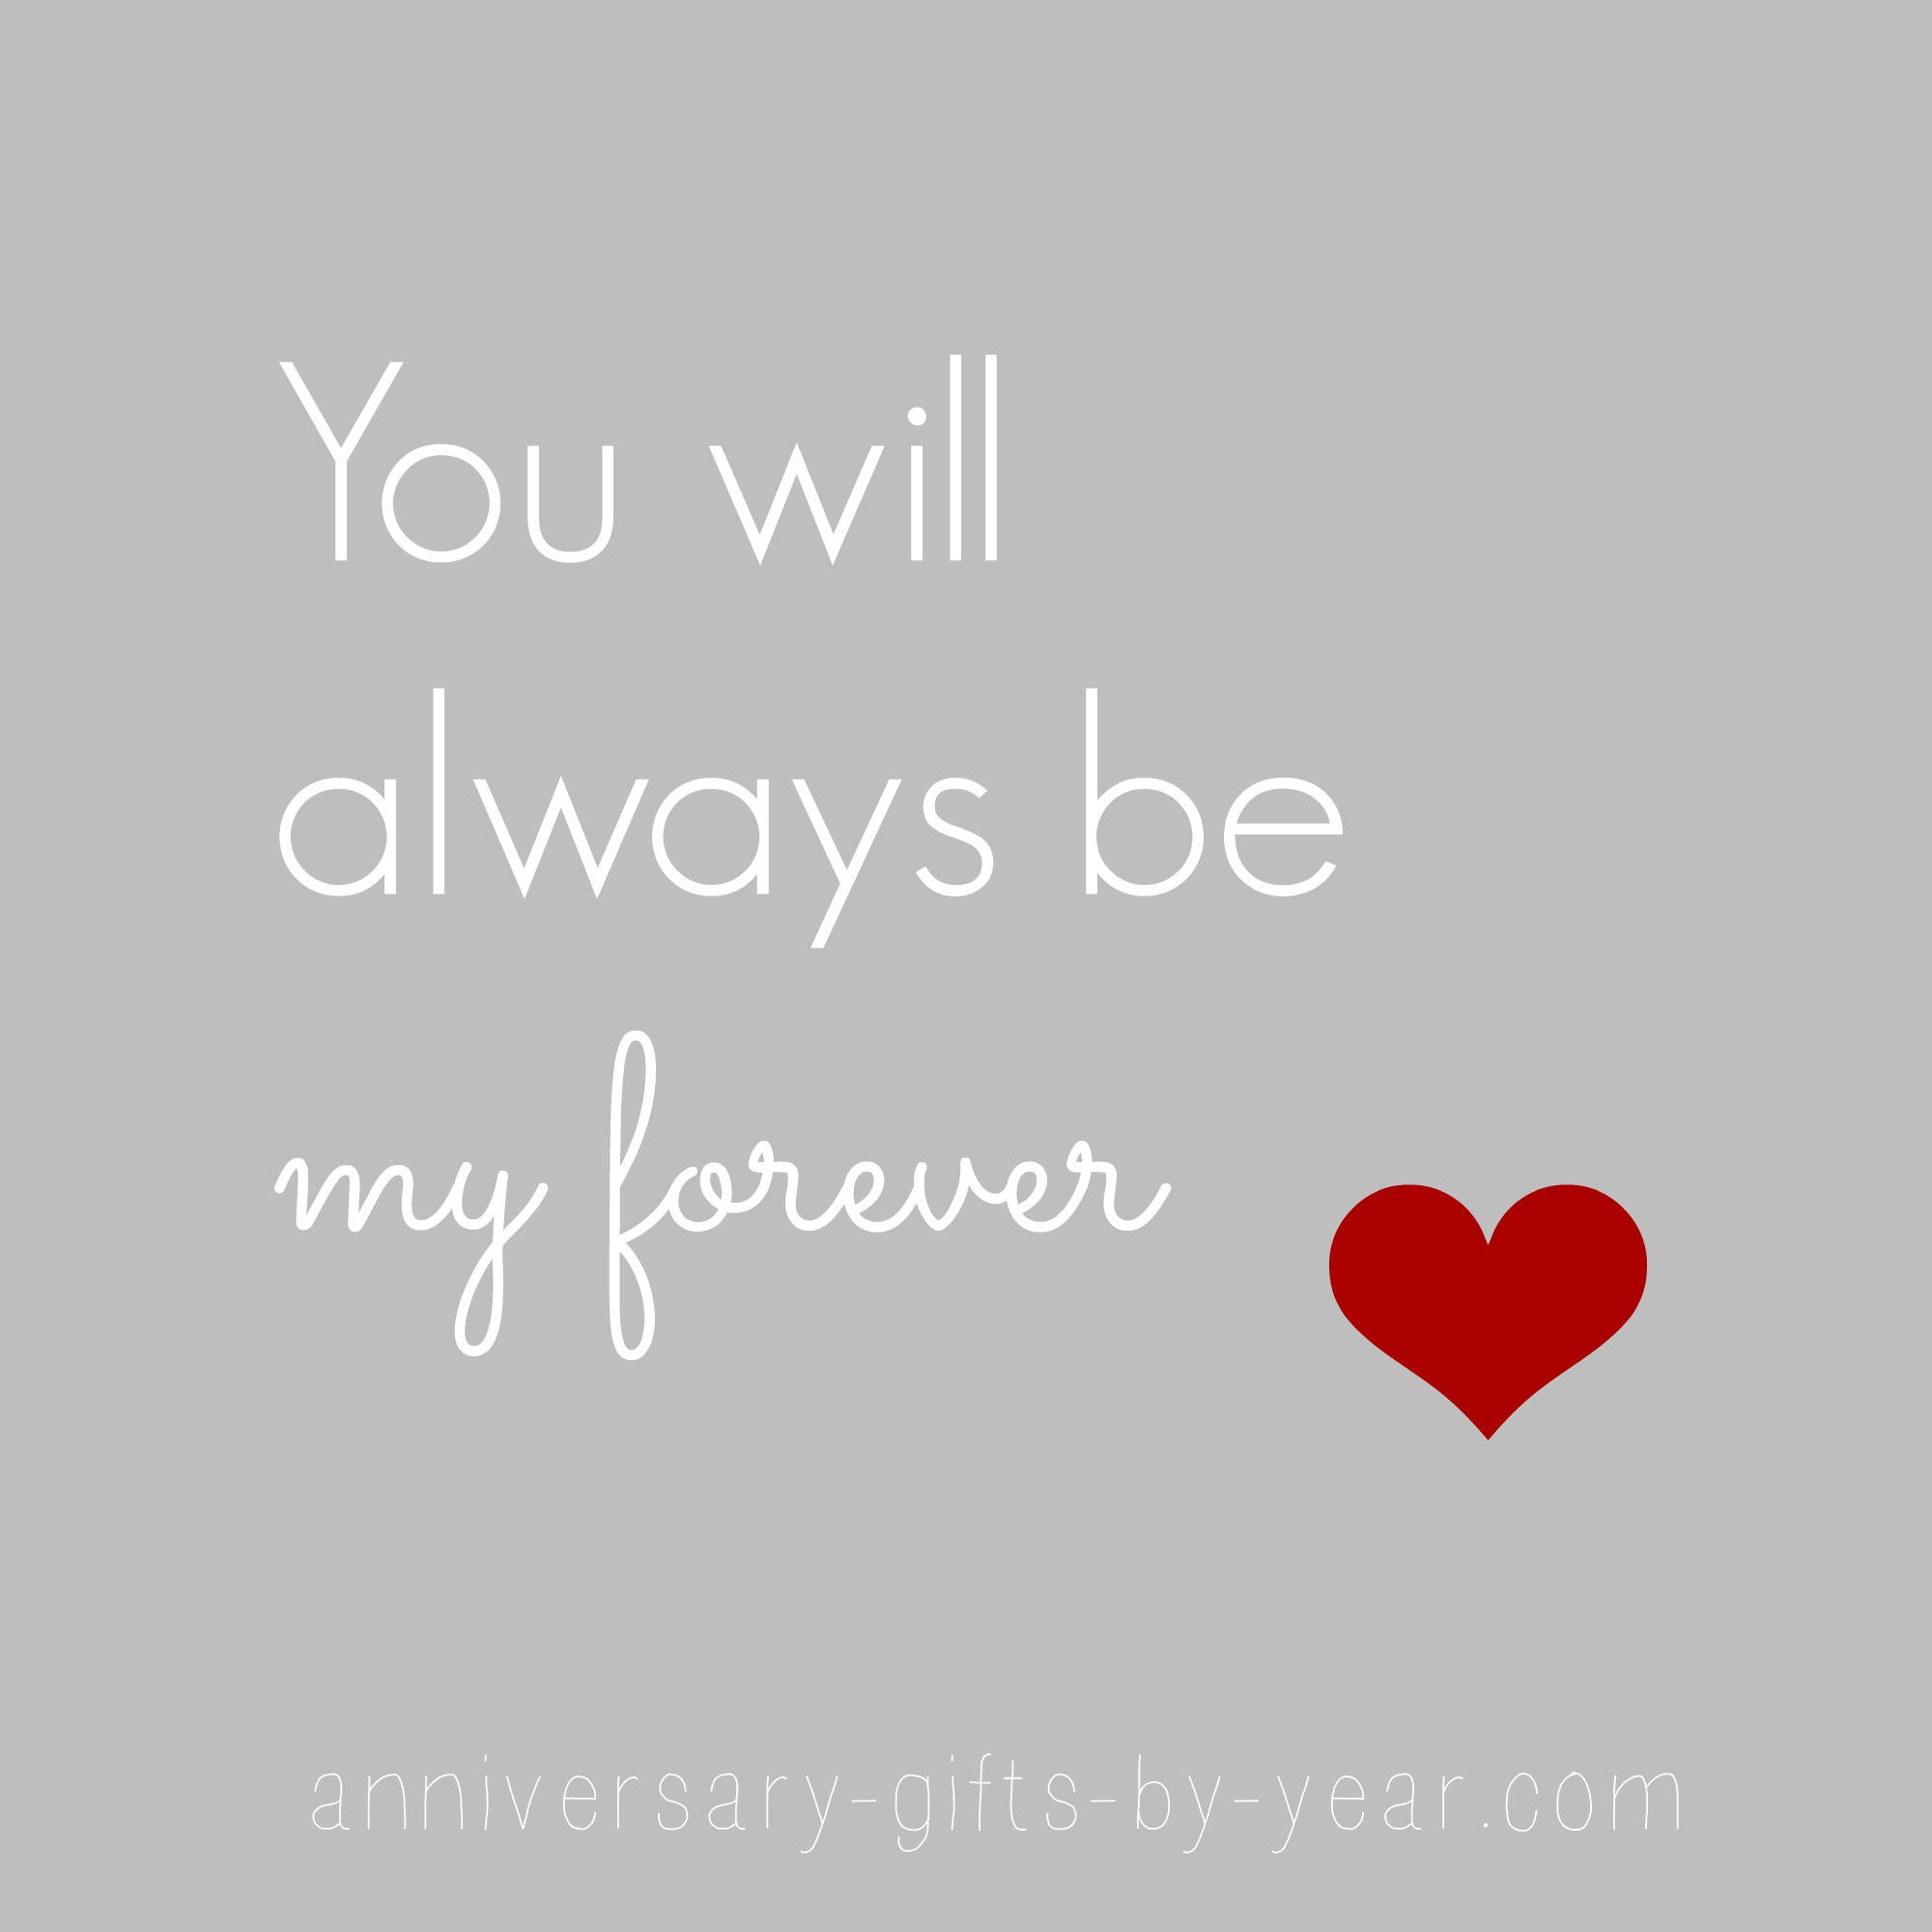 Quotes For Anniversary Anniversary Quotes  Perfect For Anniversary Cards And Speeches